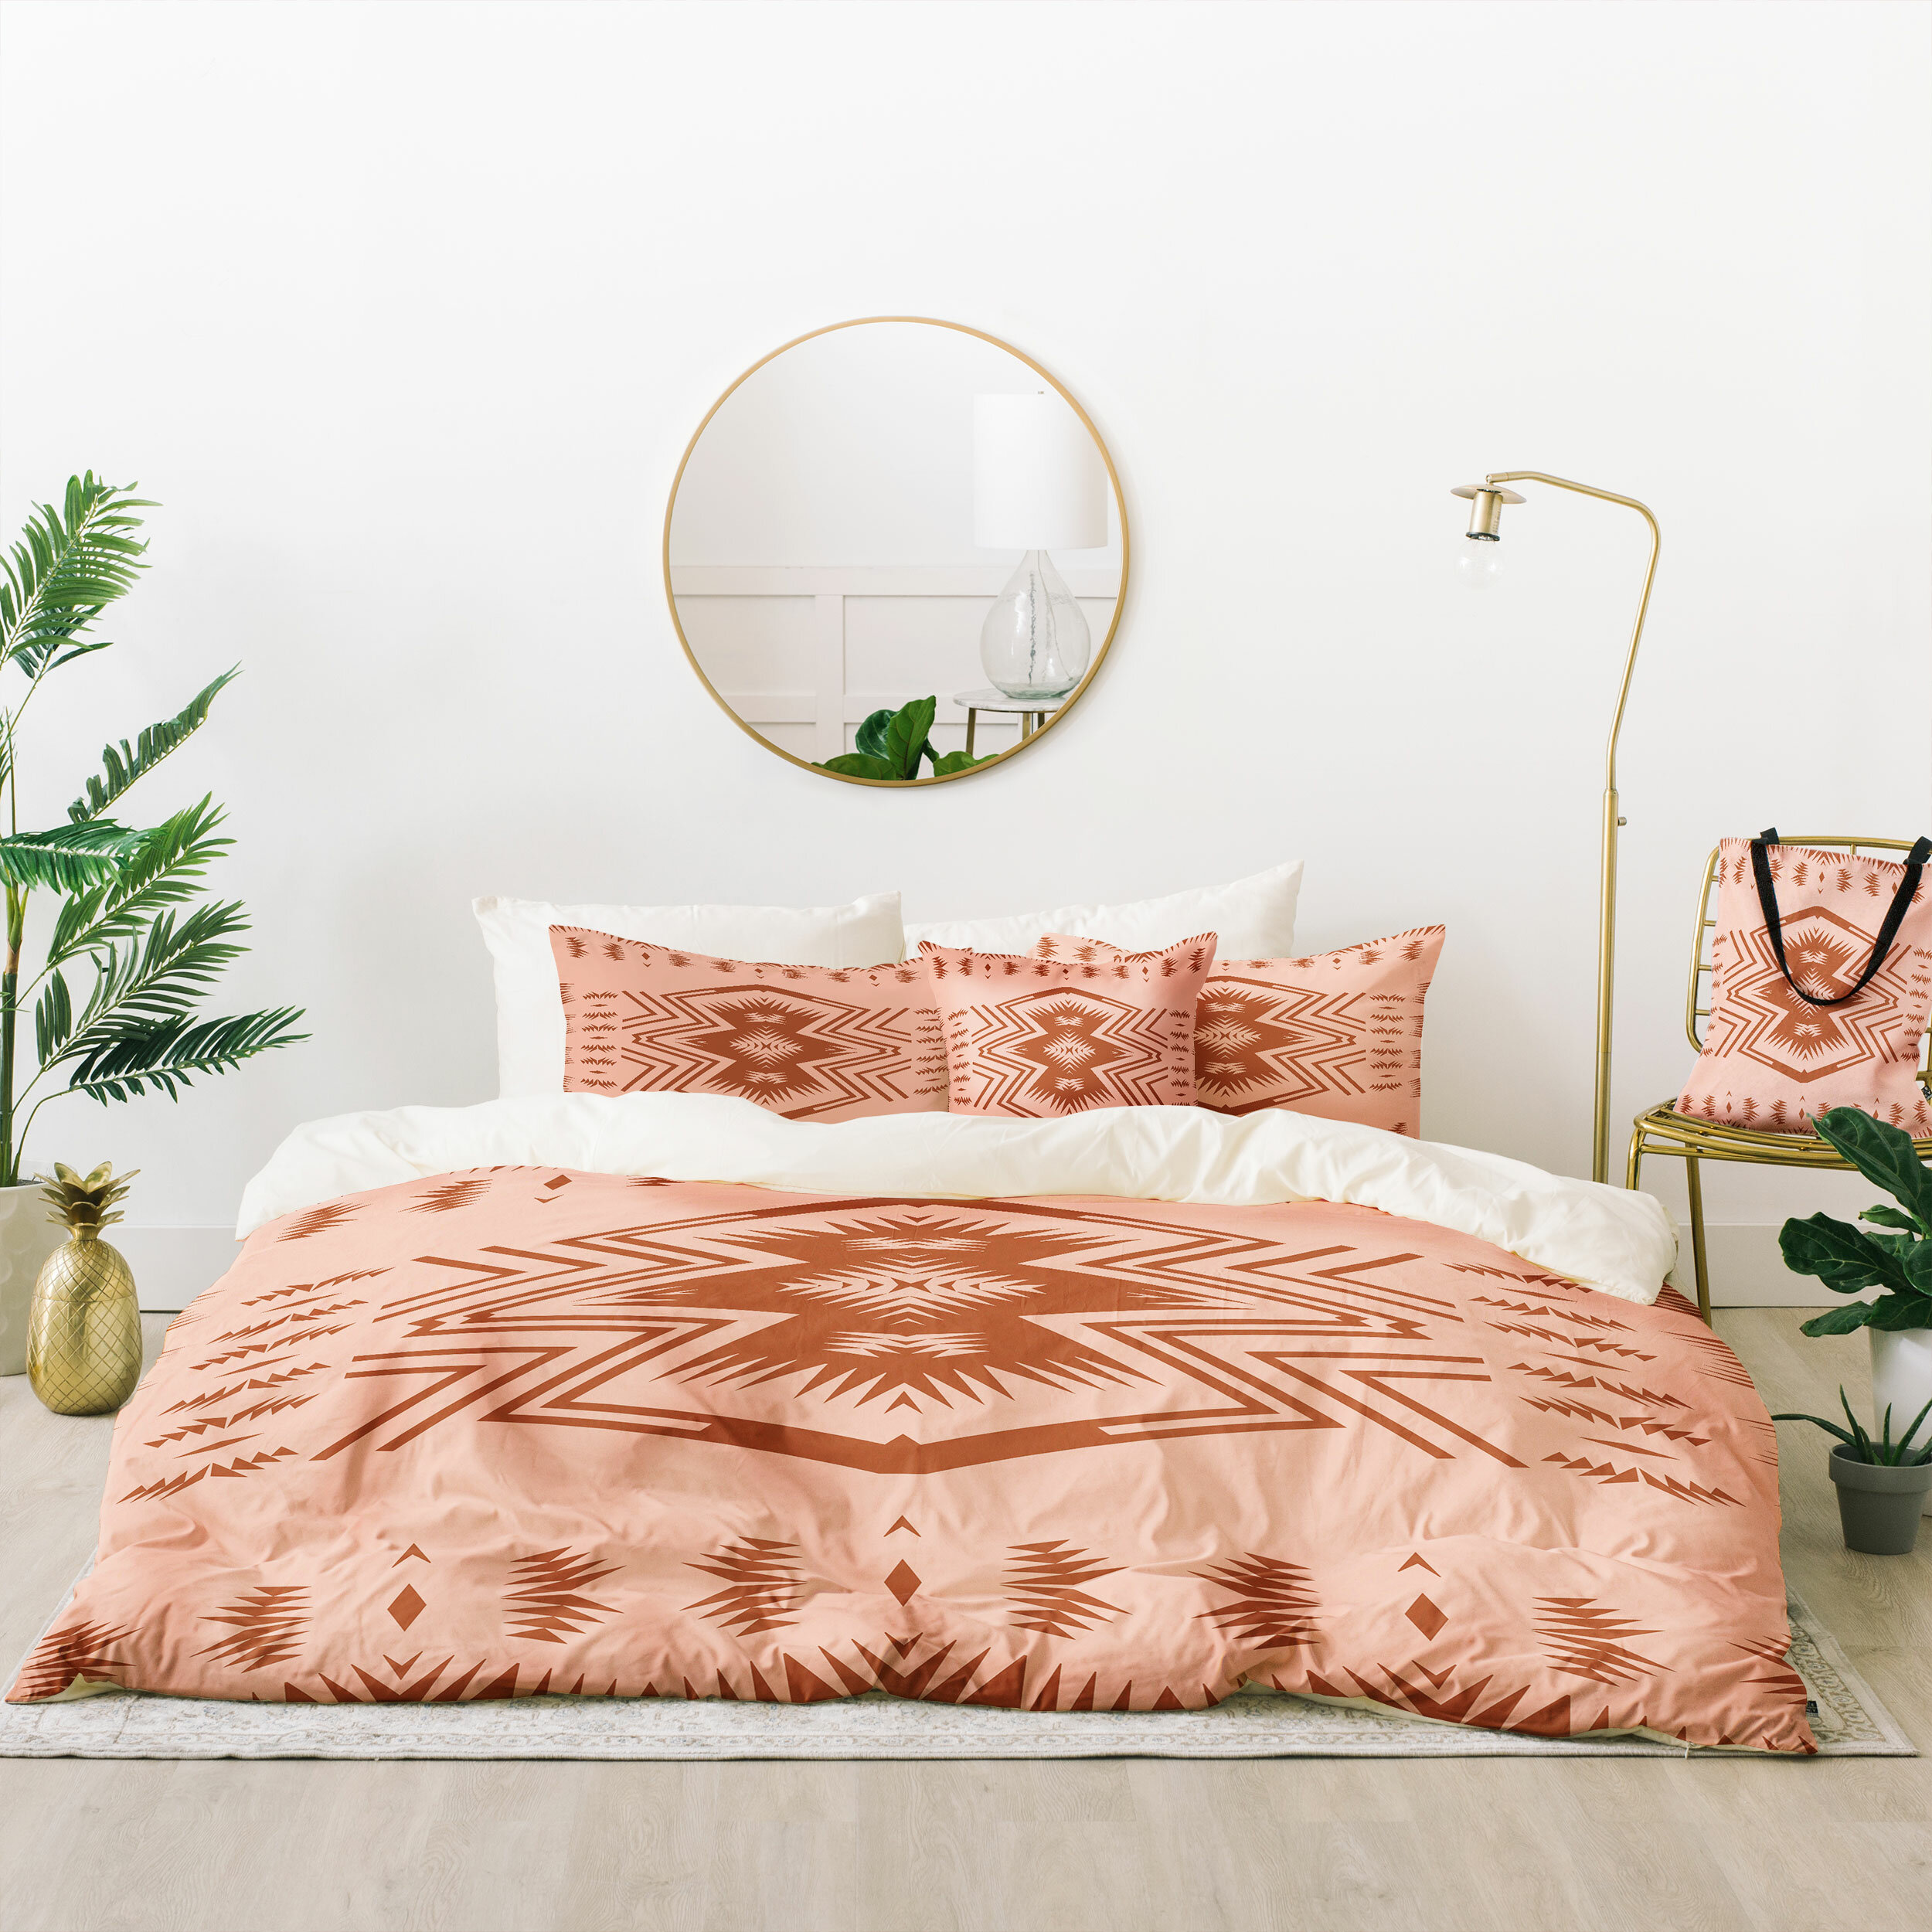 East Urban Home Holli Zollinger Colorado Blush Duvet Cover Set Wayfair